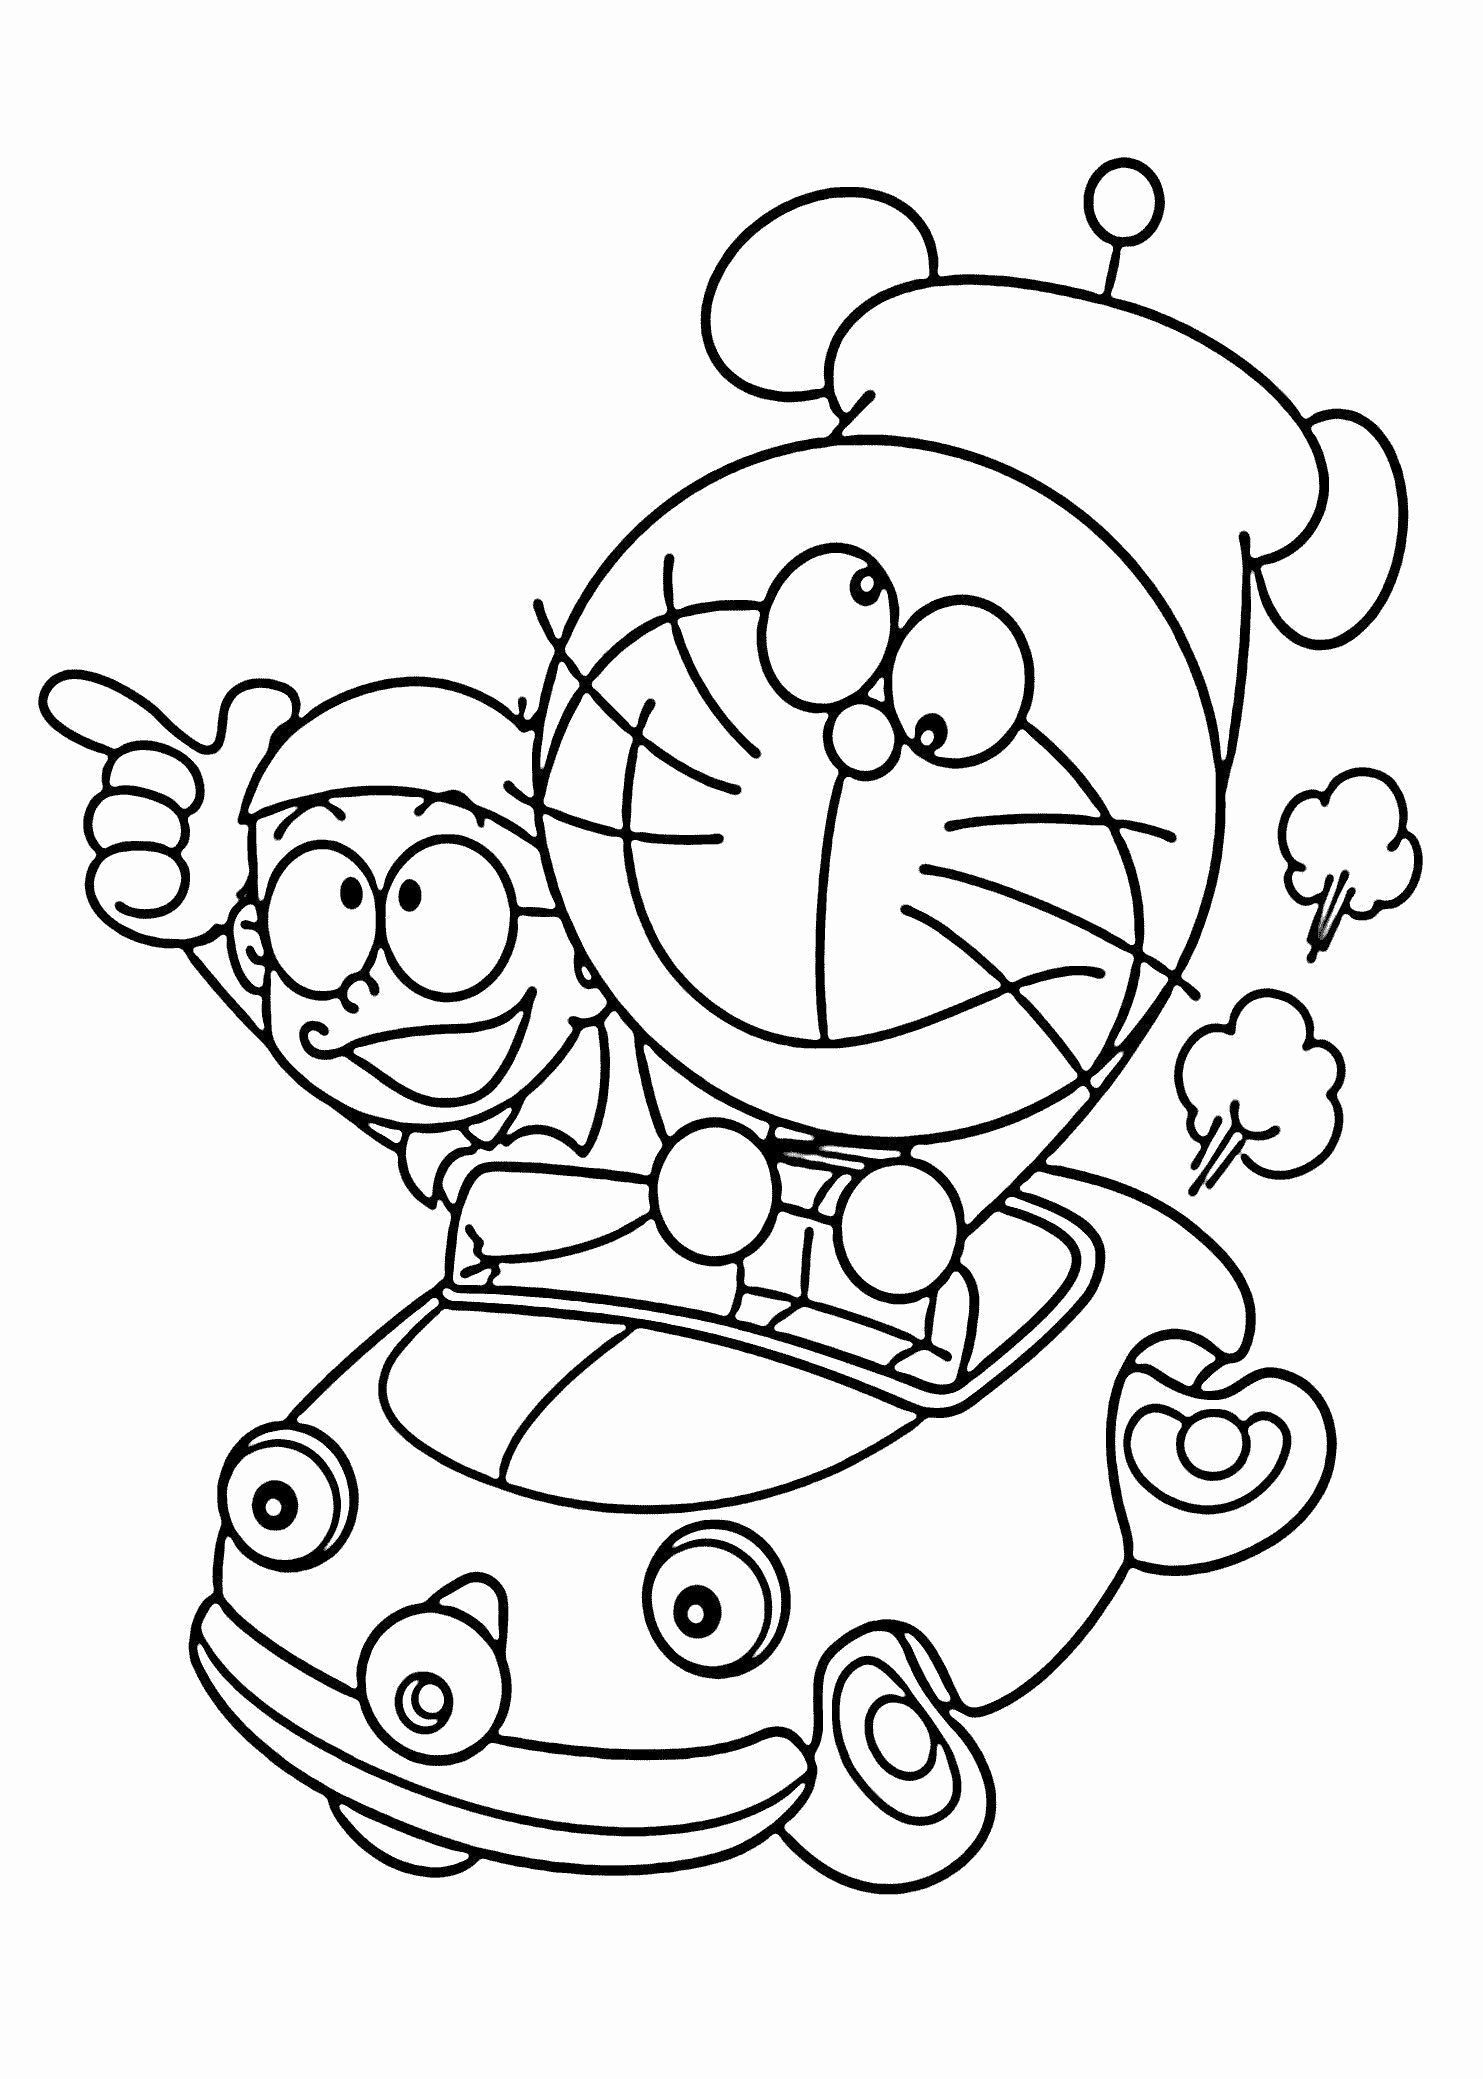 Cartoon Coloring Games Online Luxury Beautiful Preschool Chinese New Year Coloring Pages Turkey Coloring Pages Farm Animal Coloring Pages Cool Coloring Pages